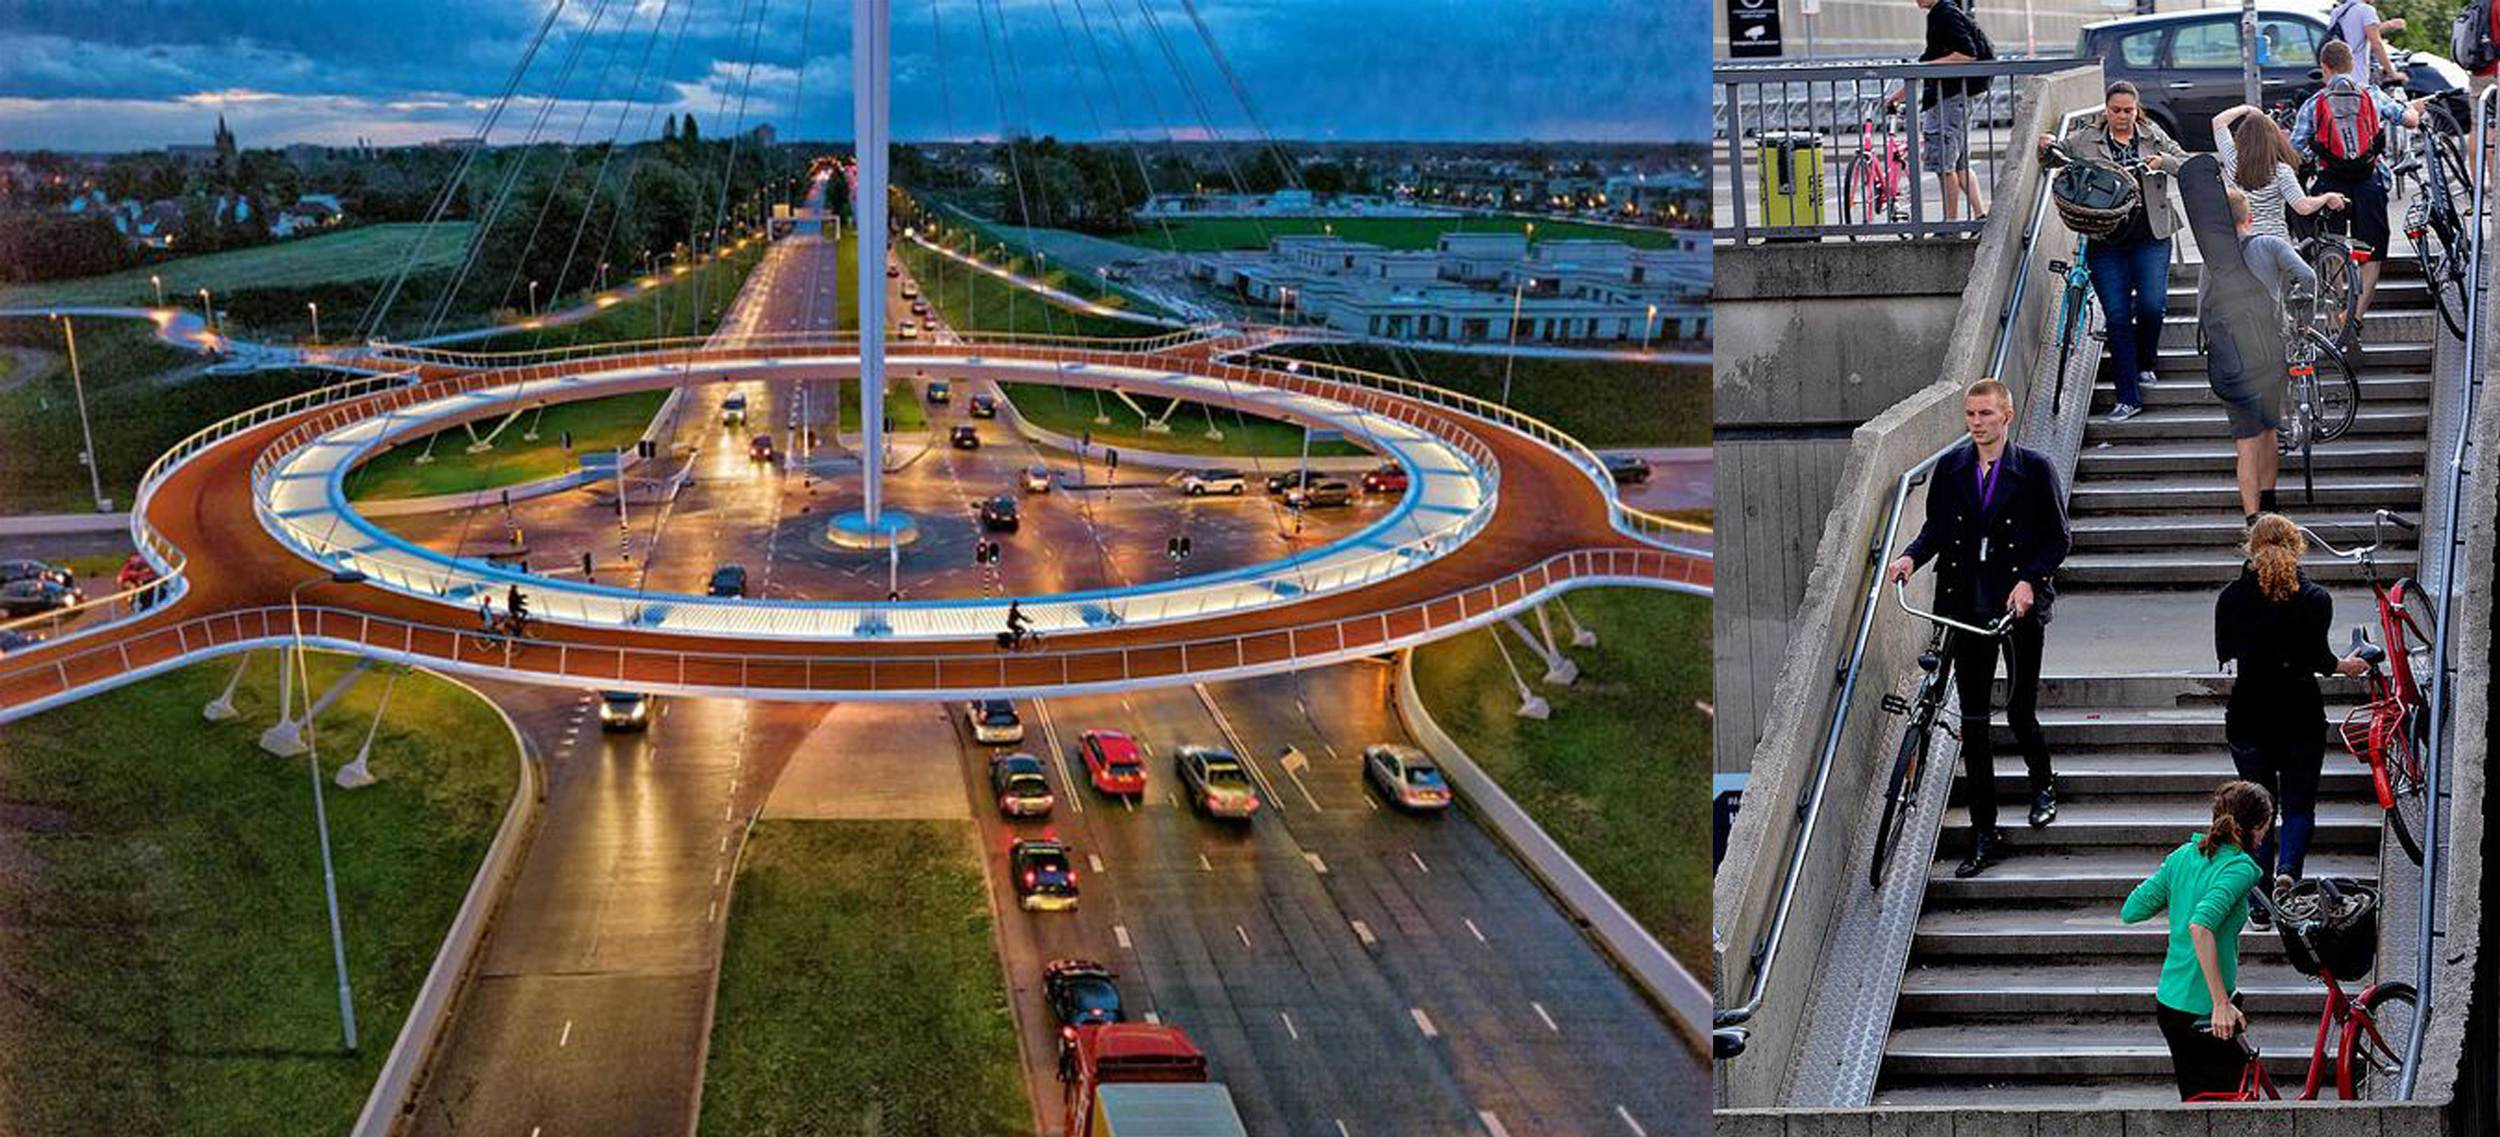 (L) The Hovenring is a circular suspended bridge between Eindhoven and Veldhoven in the Netherlands, which offers an alternative route for cyclists.     Image courtesy: mymodernmet.com    (R)Staircase fitted with a bike rail at Copenhagen Central Train Station.   Image courtesy:    tumblr